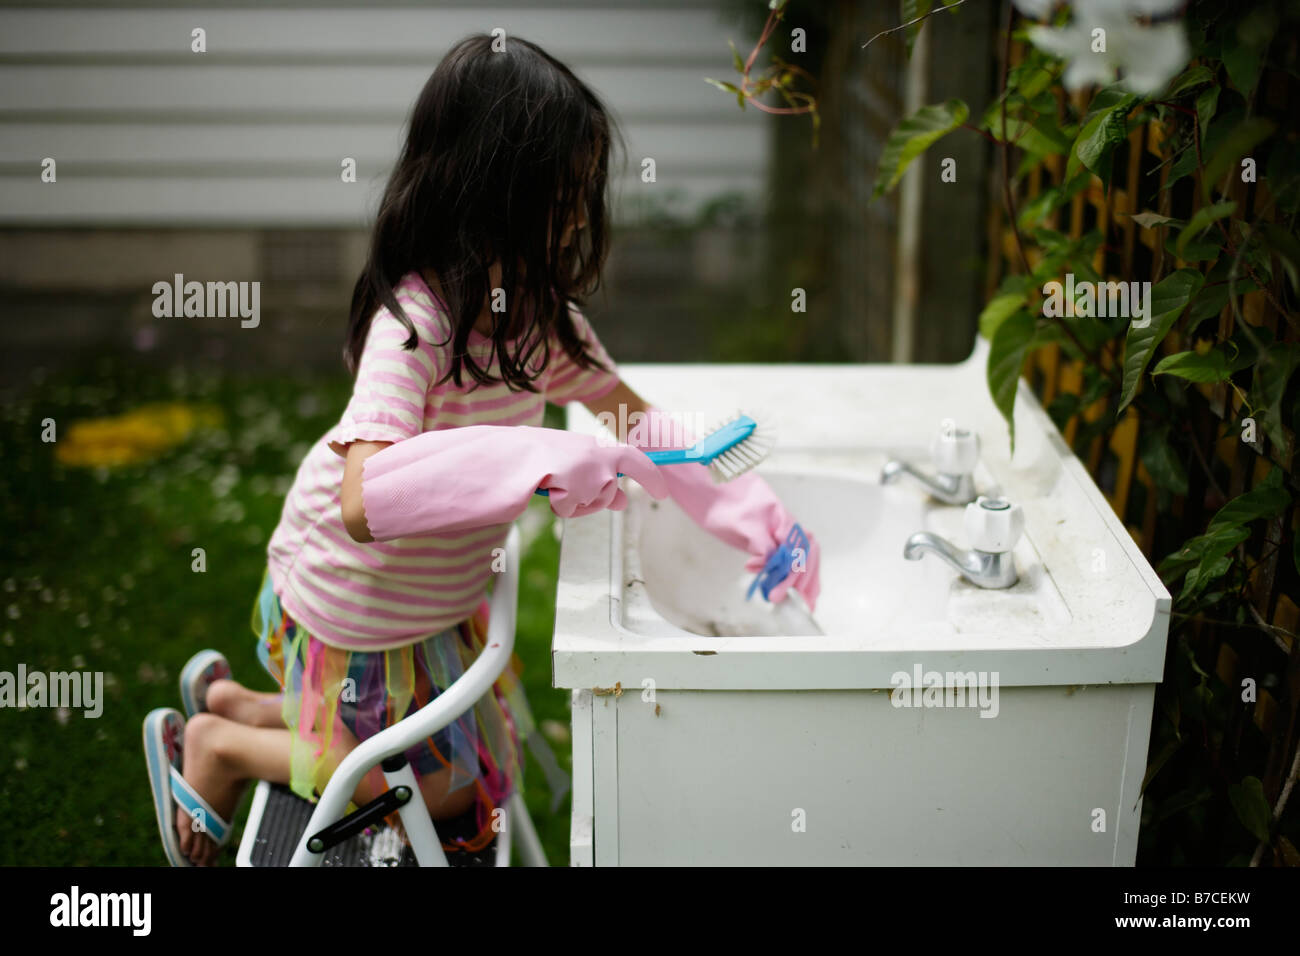 Six year old girl plays at washing up in old disused sink in garden - Stock Image